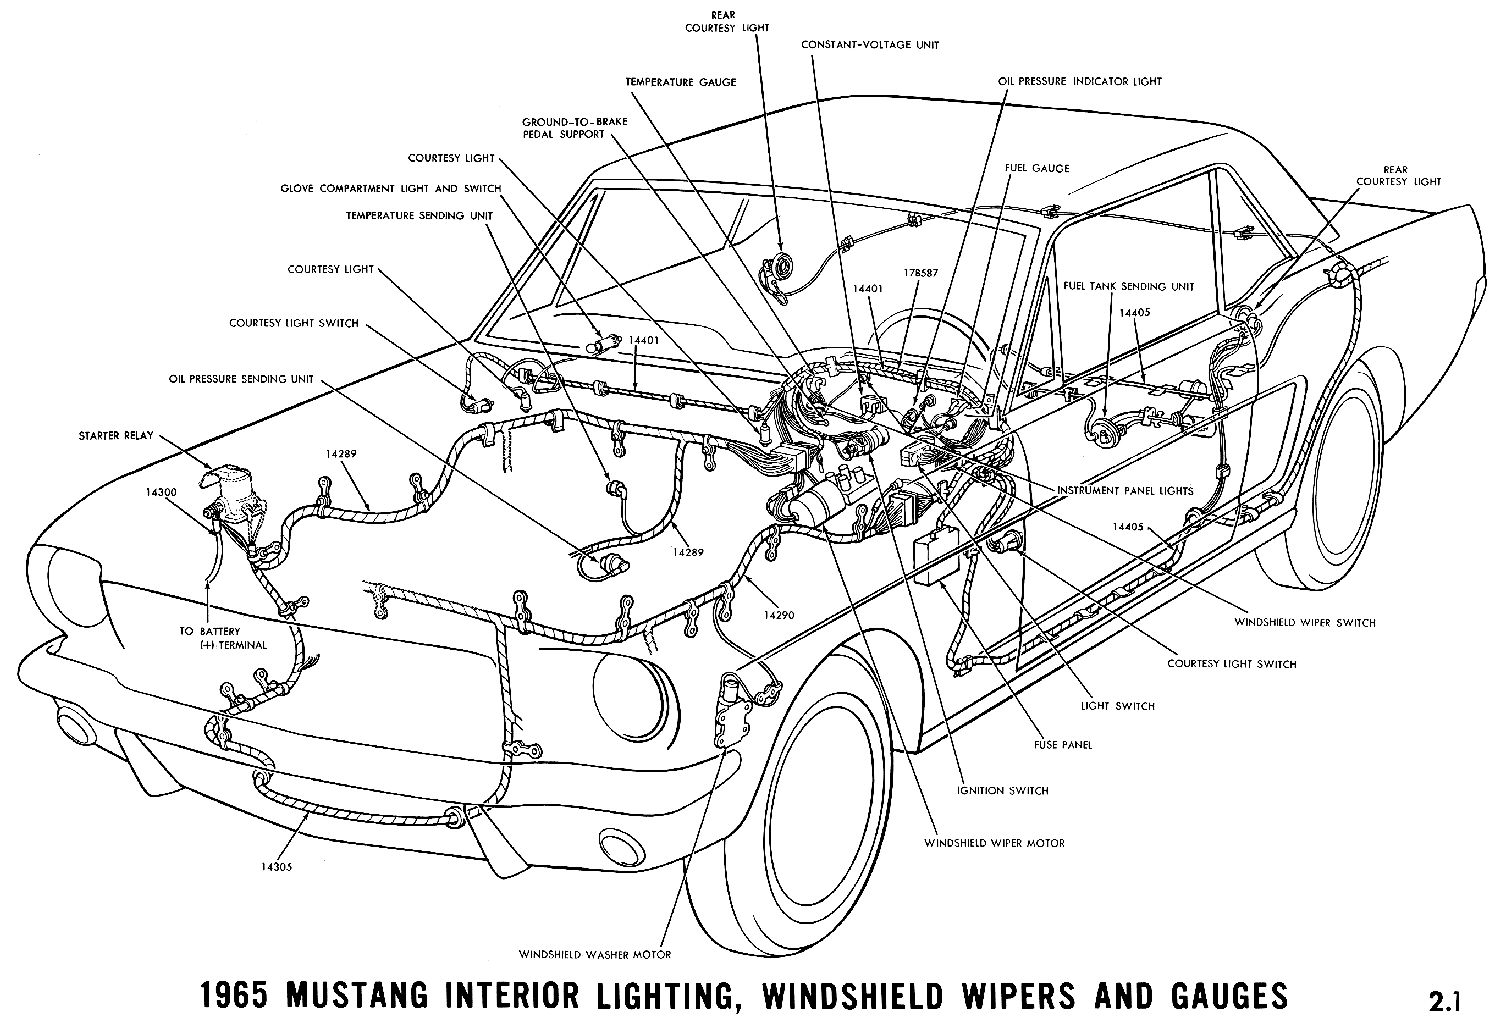 1965 mustang interior lights, windshield wiper and gauges pictorial or  schematic